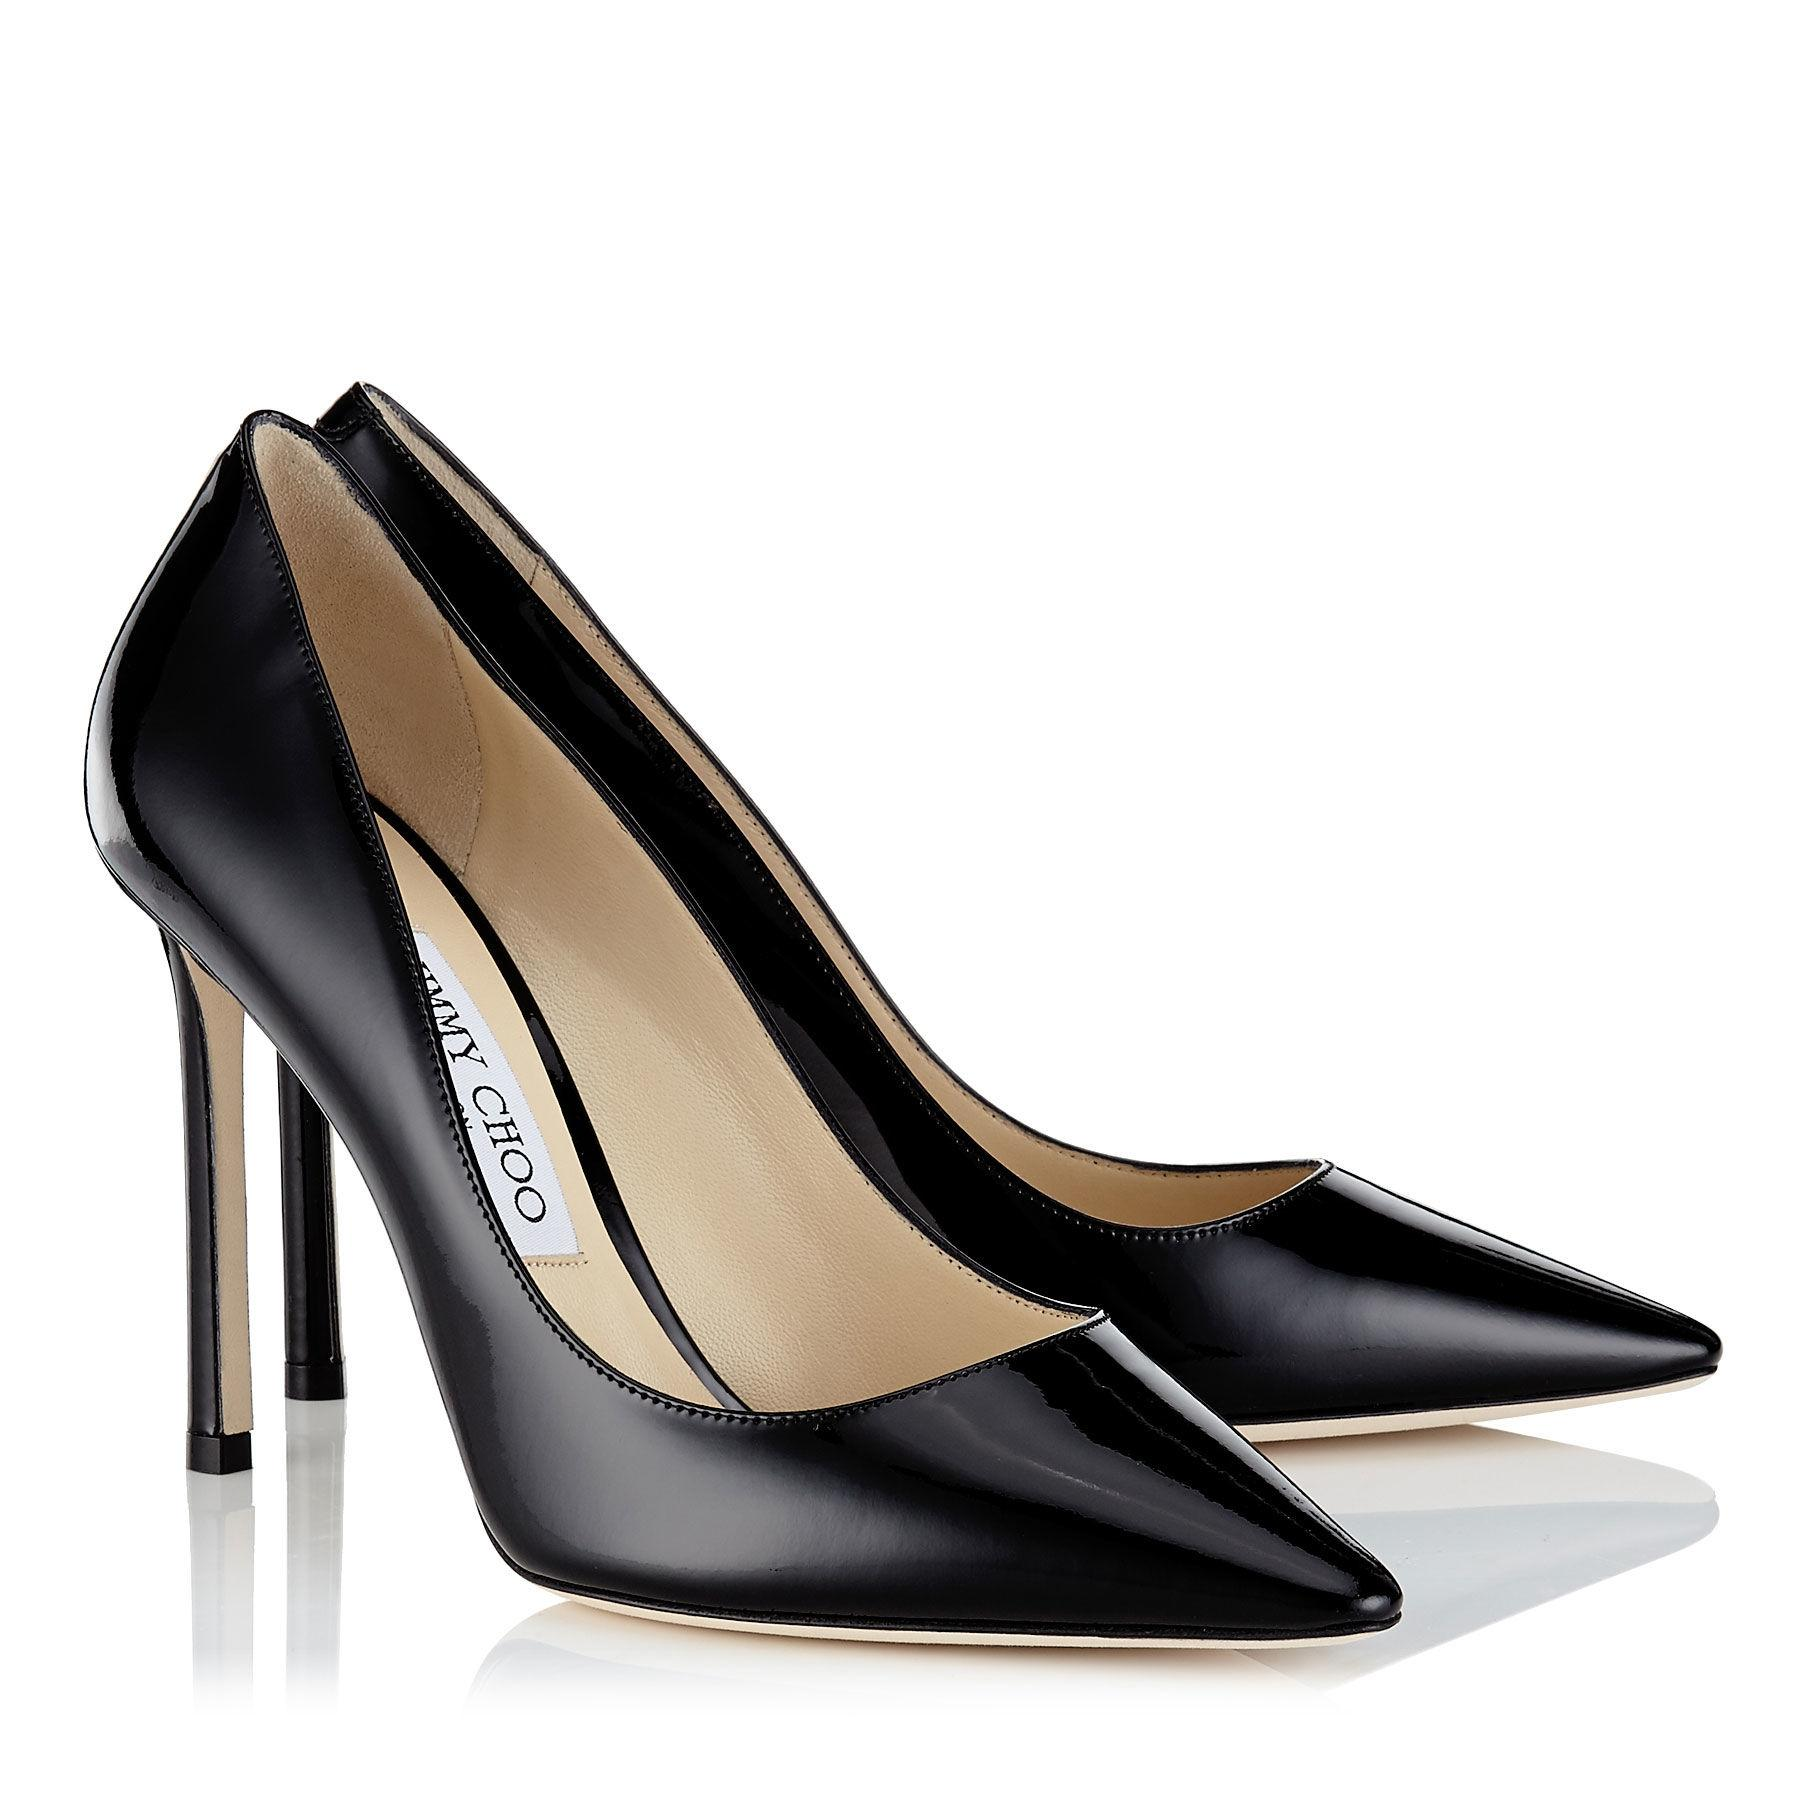 Jimmy Choo Black New Romy 100 Gclassic Patent 5 Pumps Size EU 35.5 (Approx. US 5.5) Regular (M, B)